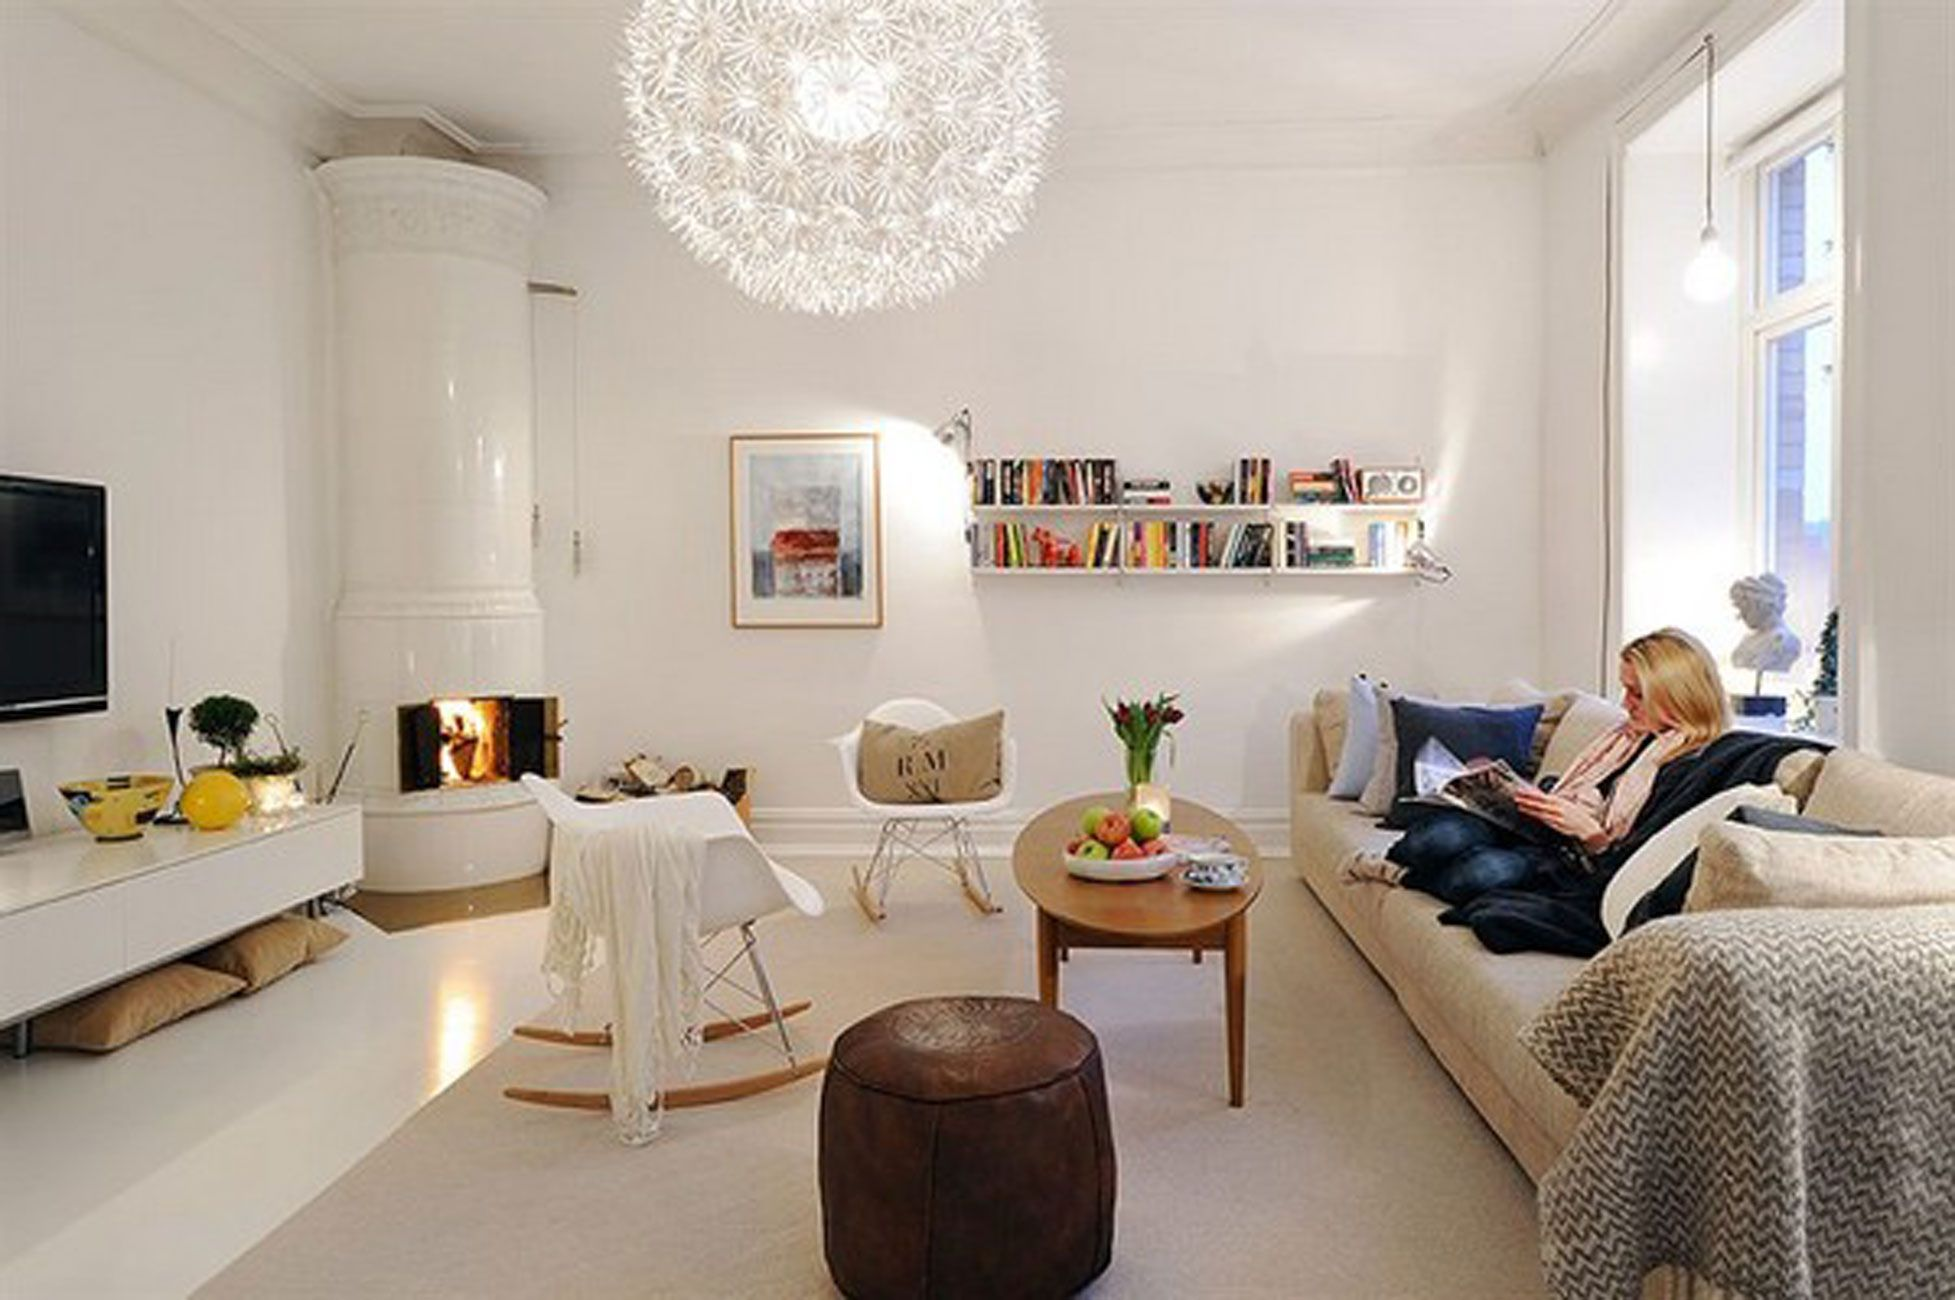 Interior designs luxury scandinavian style interior design